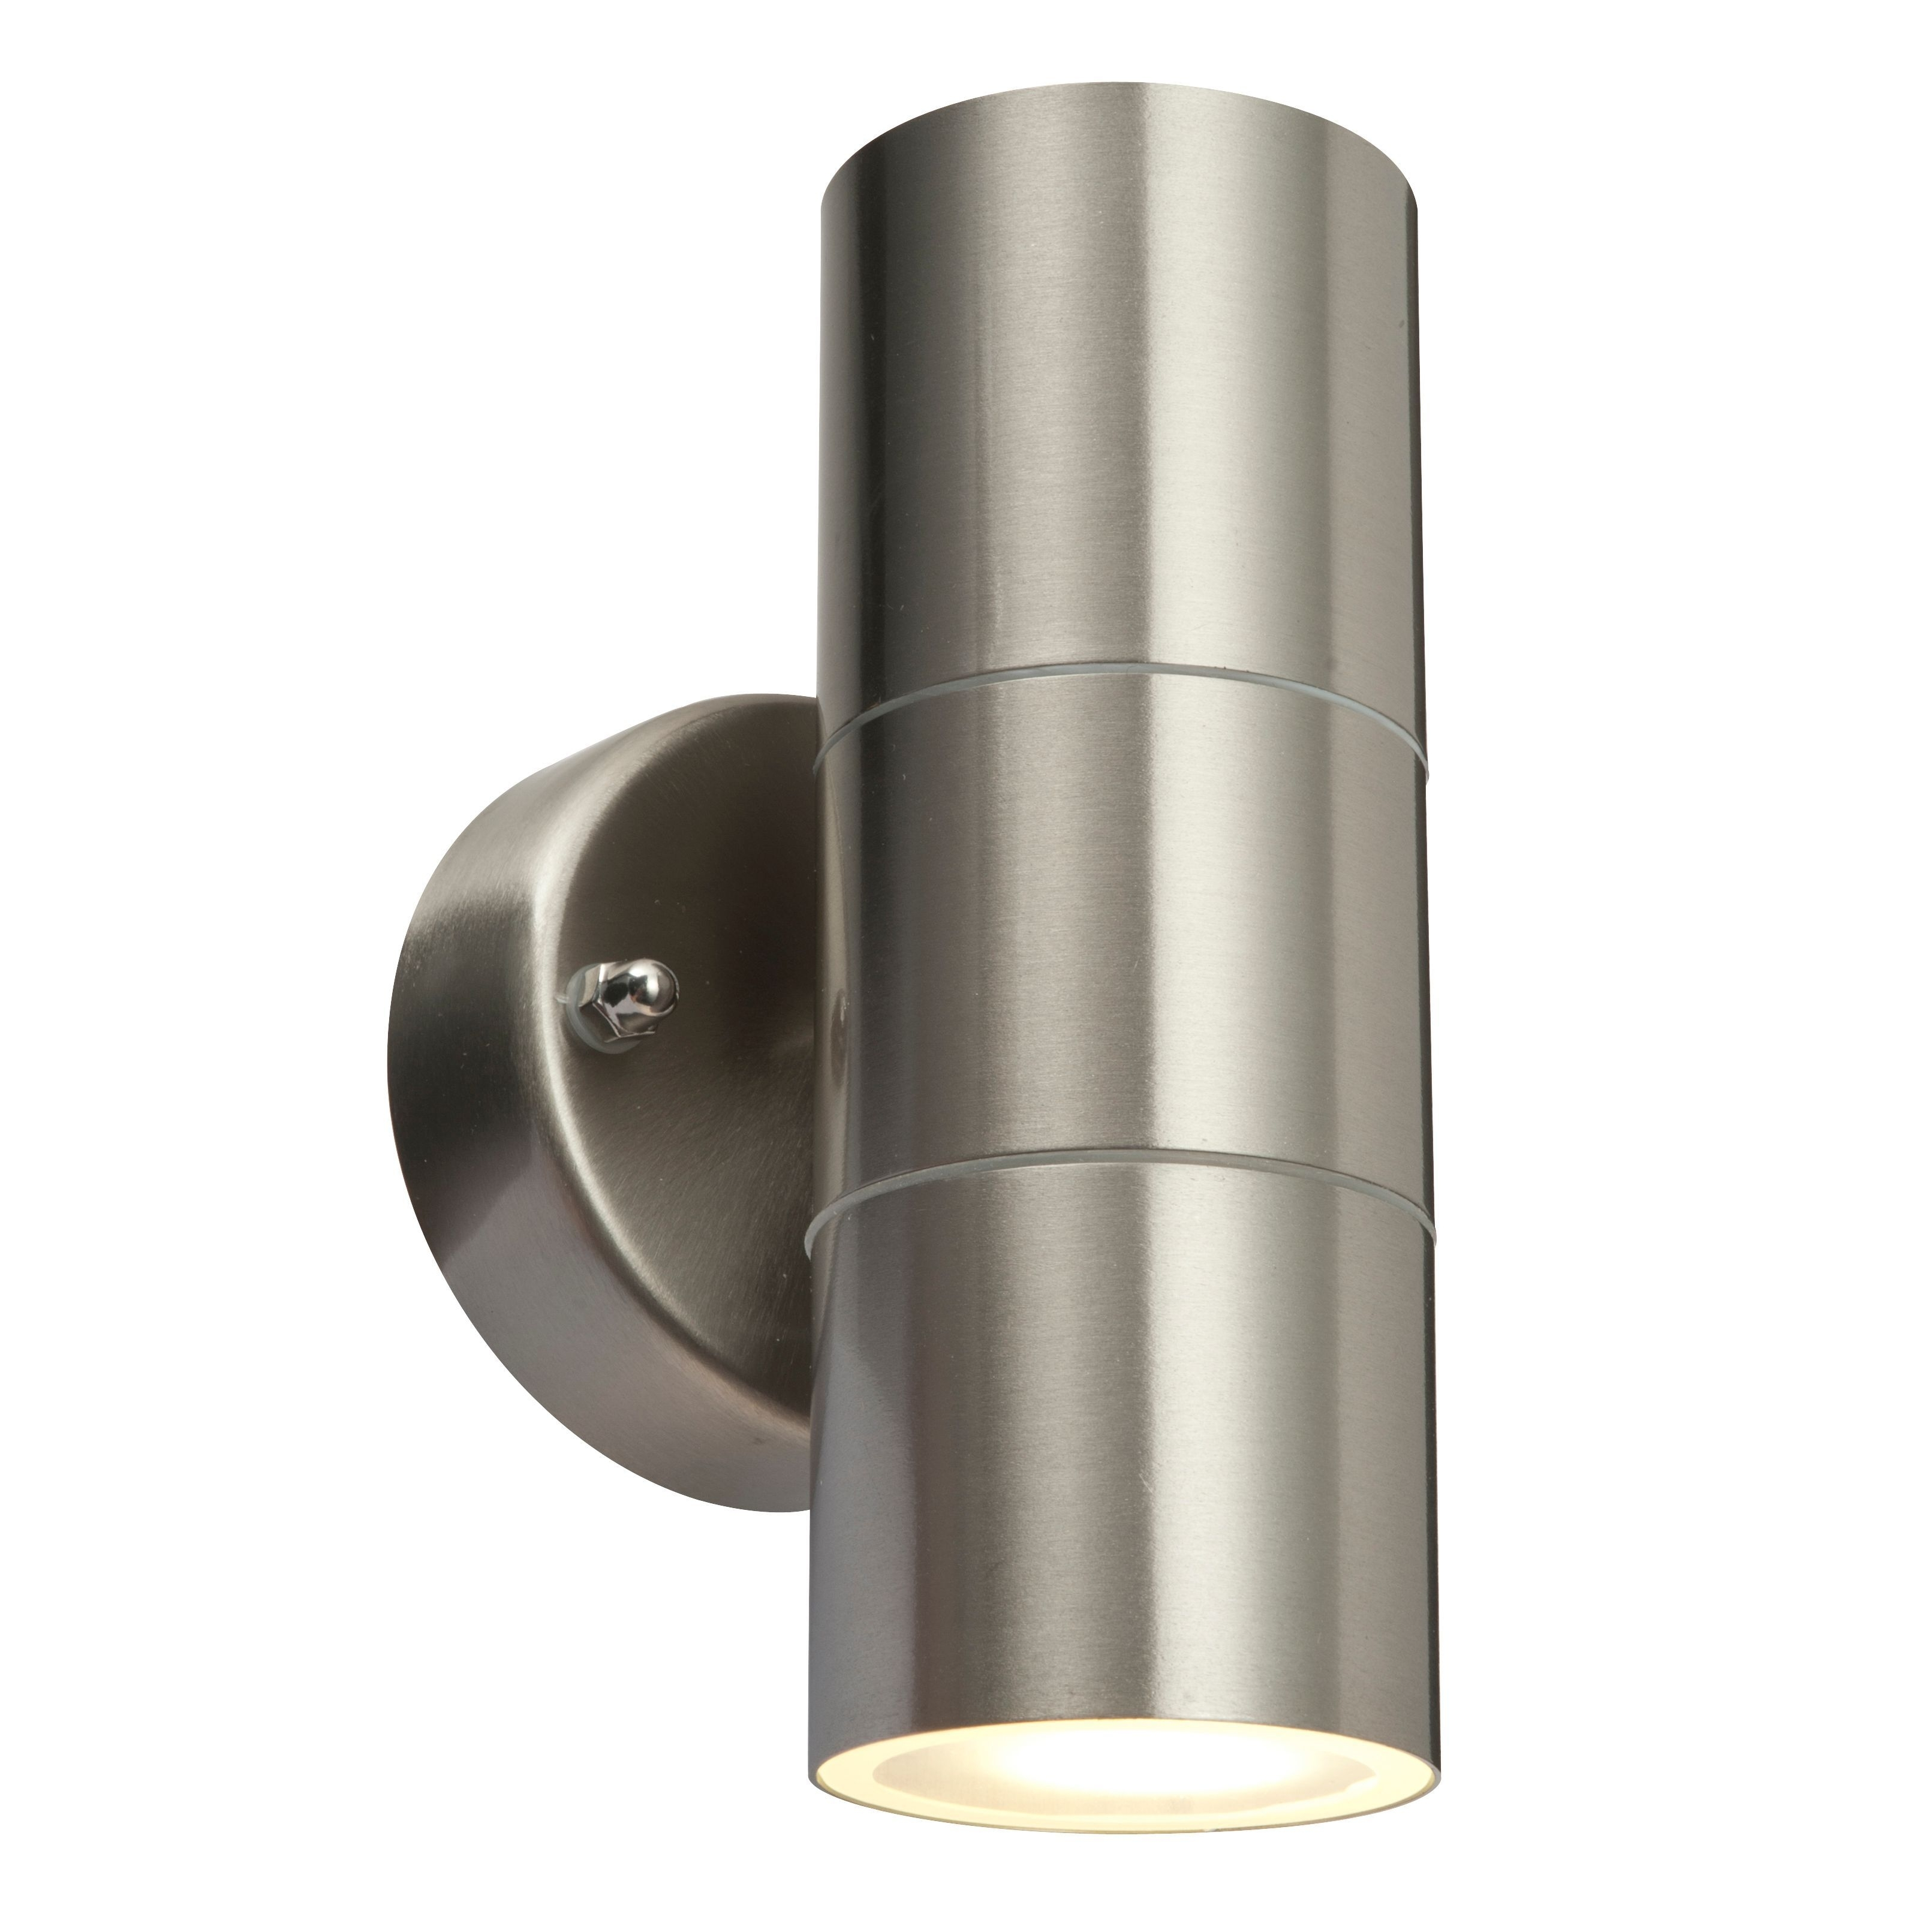 Blooma Sommus Stainless Steel Mains Powered External Up & Down Wall Regarding Outdoor Ceiling Lights At B&q (#5 of 15)